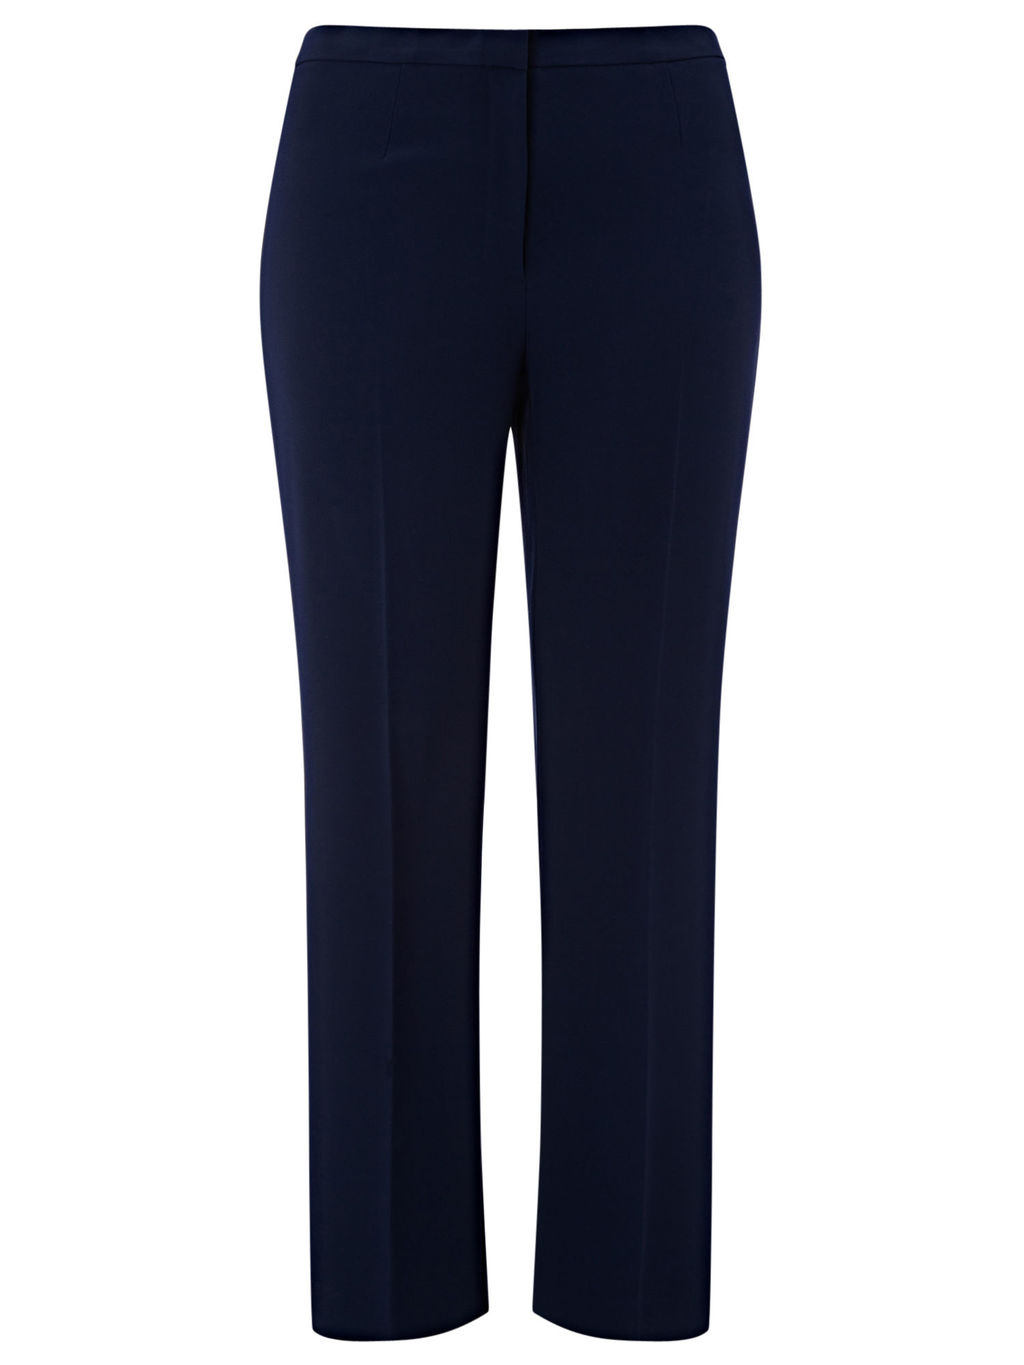 Navy Standard Leg Trouser - length: standard; pattern: plain; waist: mid/regular rise; predominant colour: navy; occasions: work, creative work; fibres: polyester/polyamide - 100%; fit: straight leg; pattern type: fabric; texture group: woven light midweight; style: standard; season: s/s 2016; wardrobe: basic